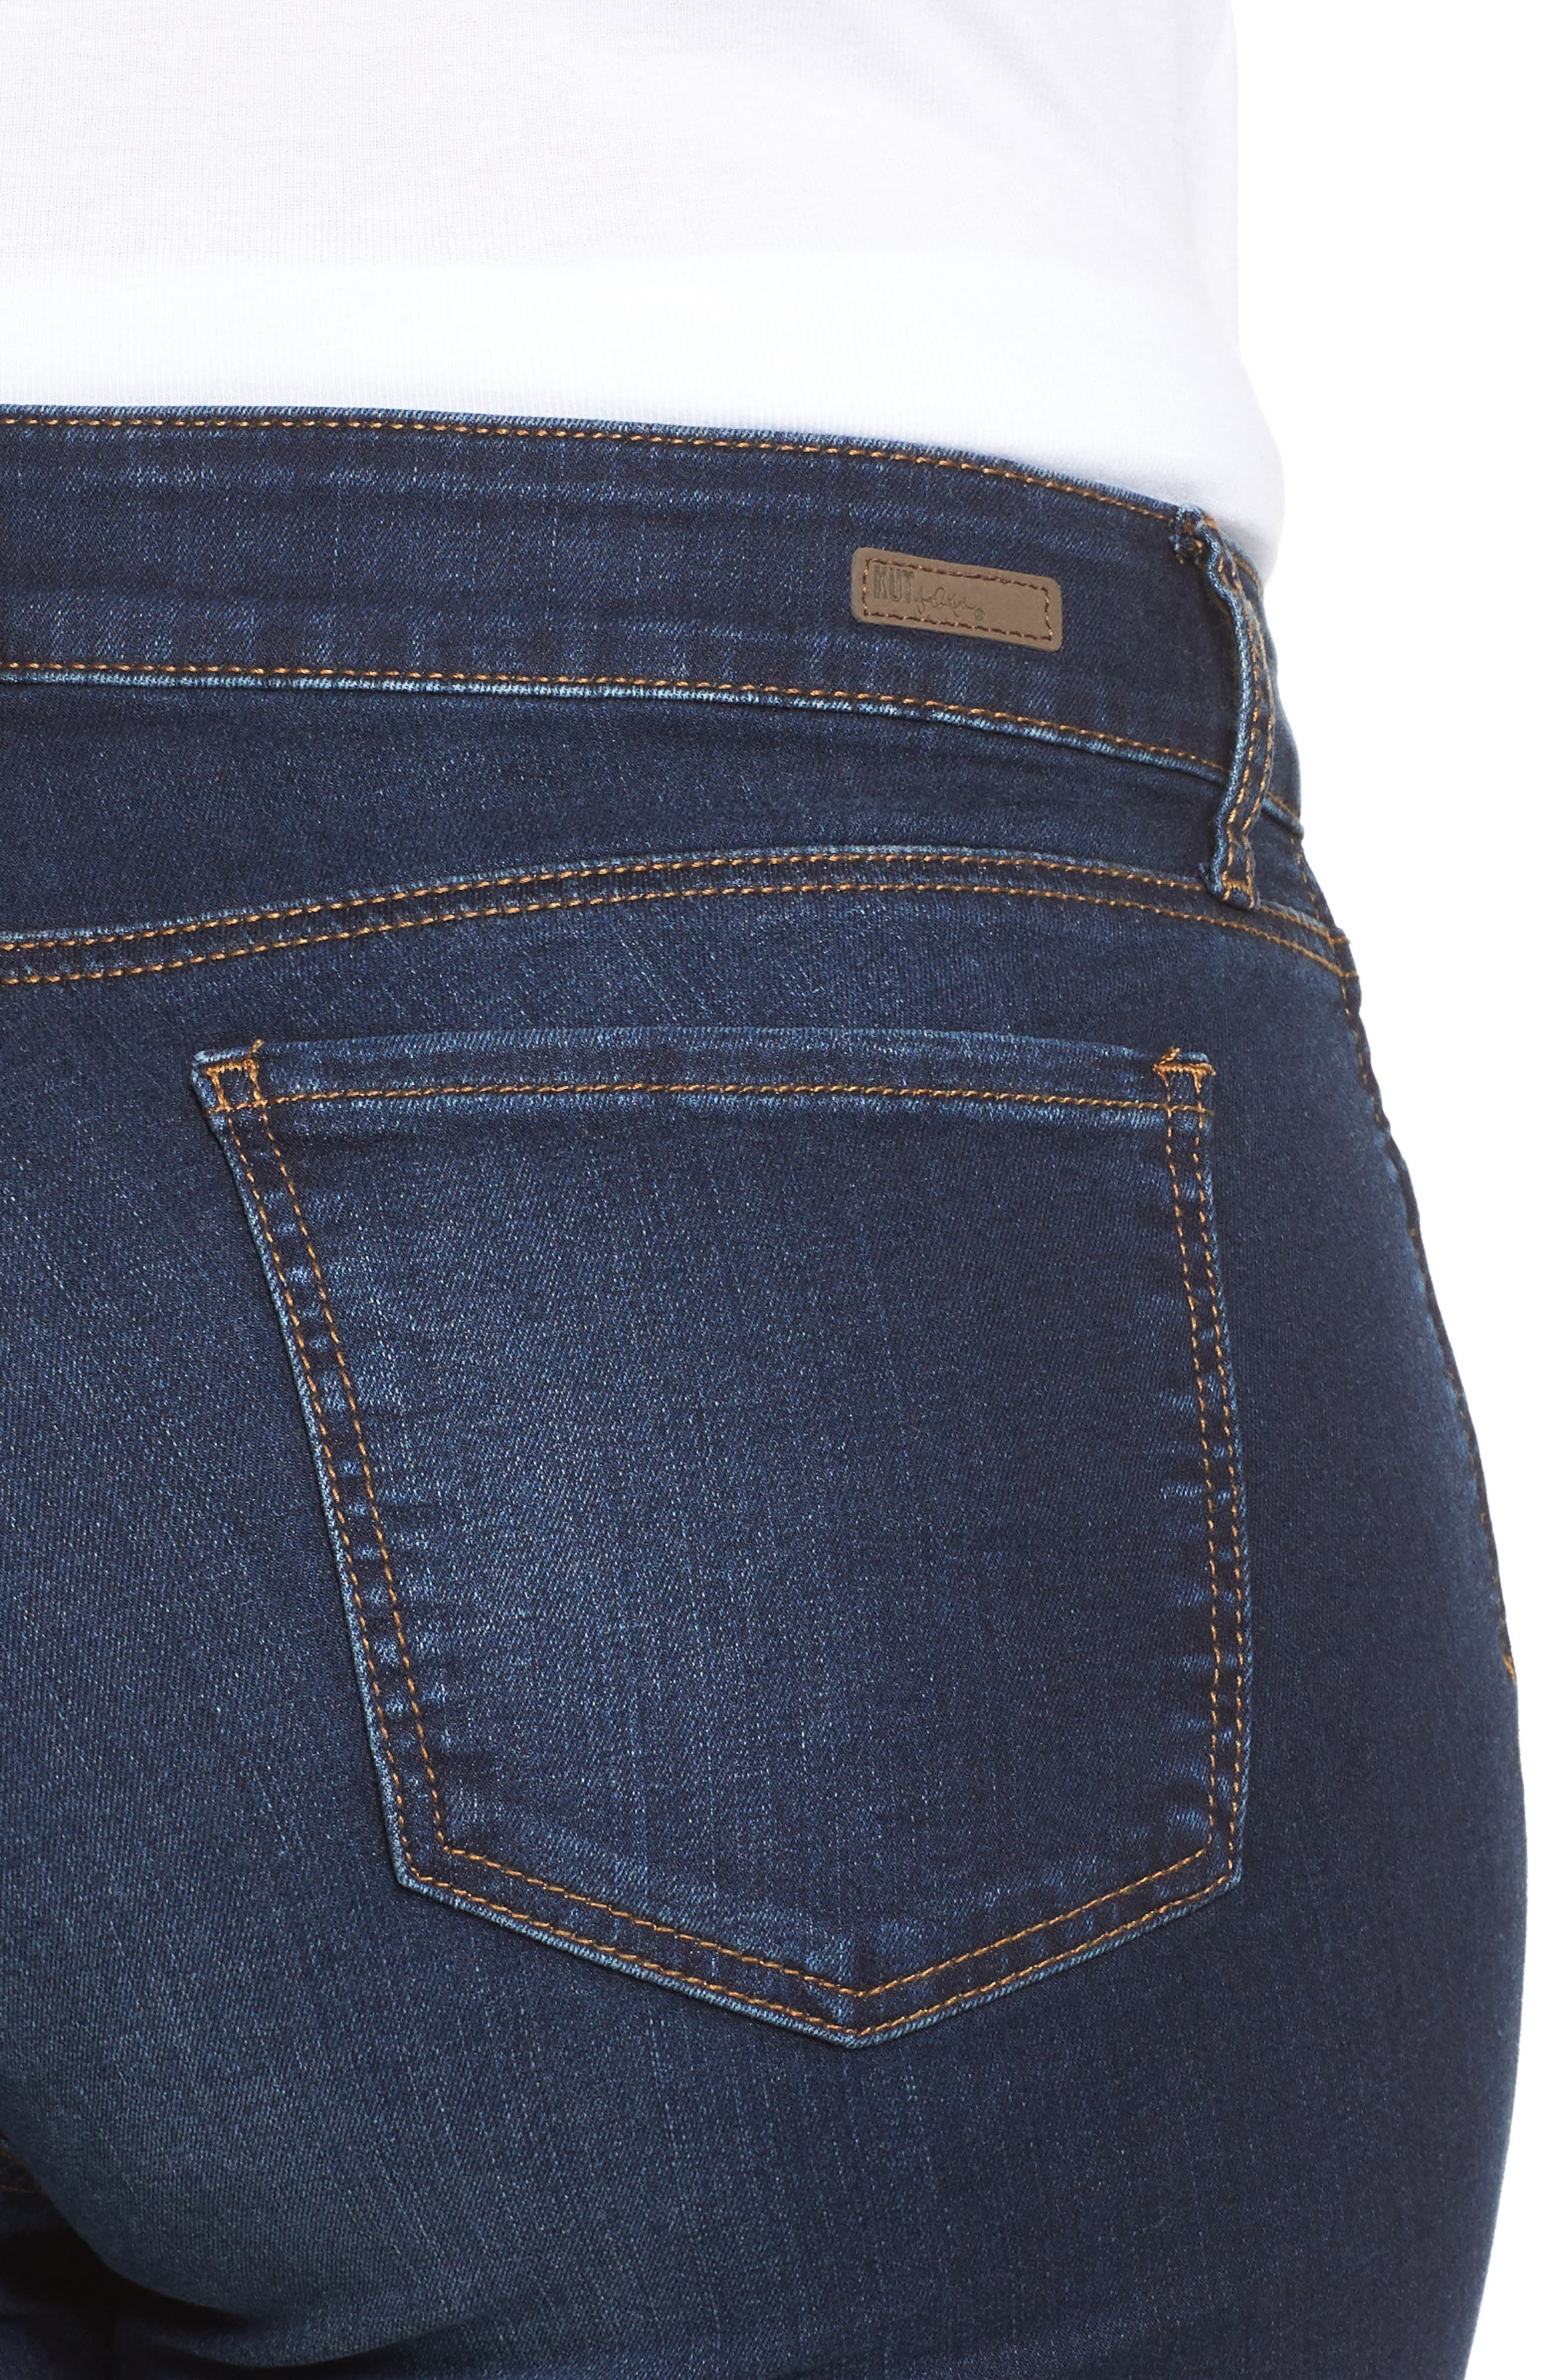 KUT FROM THE KLOTH, Natalie High Waist Bootcut Jeans, Alternate thumbnail 4, color, CLOSENESS W/ EURO BASE WASH